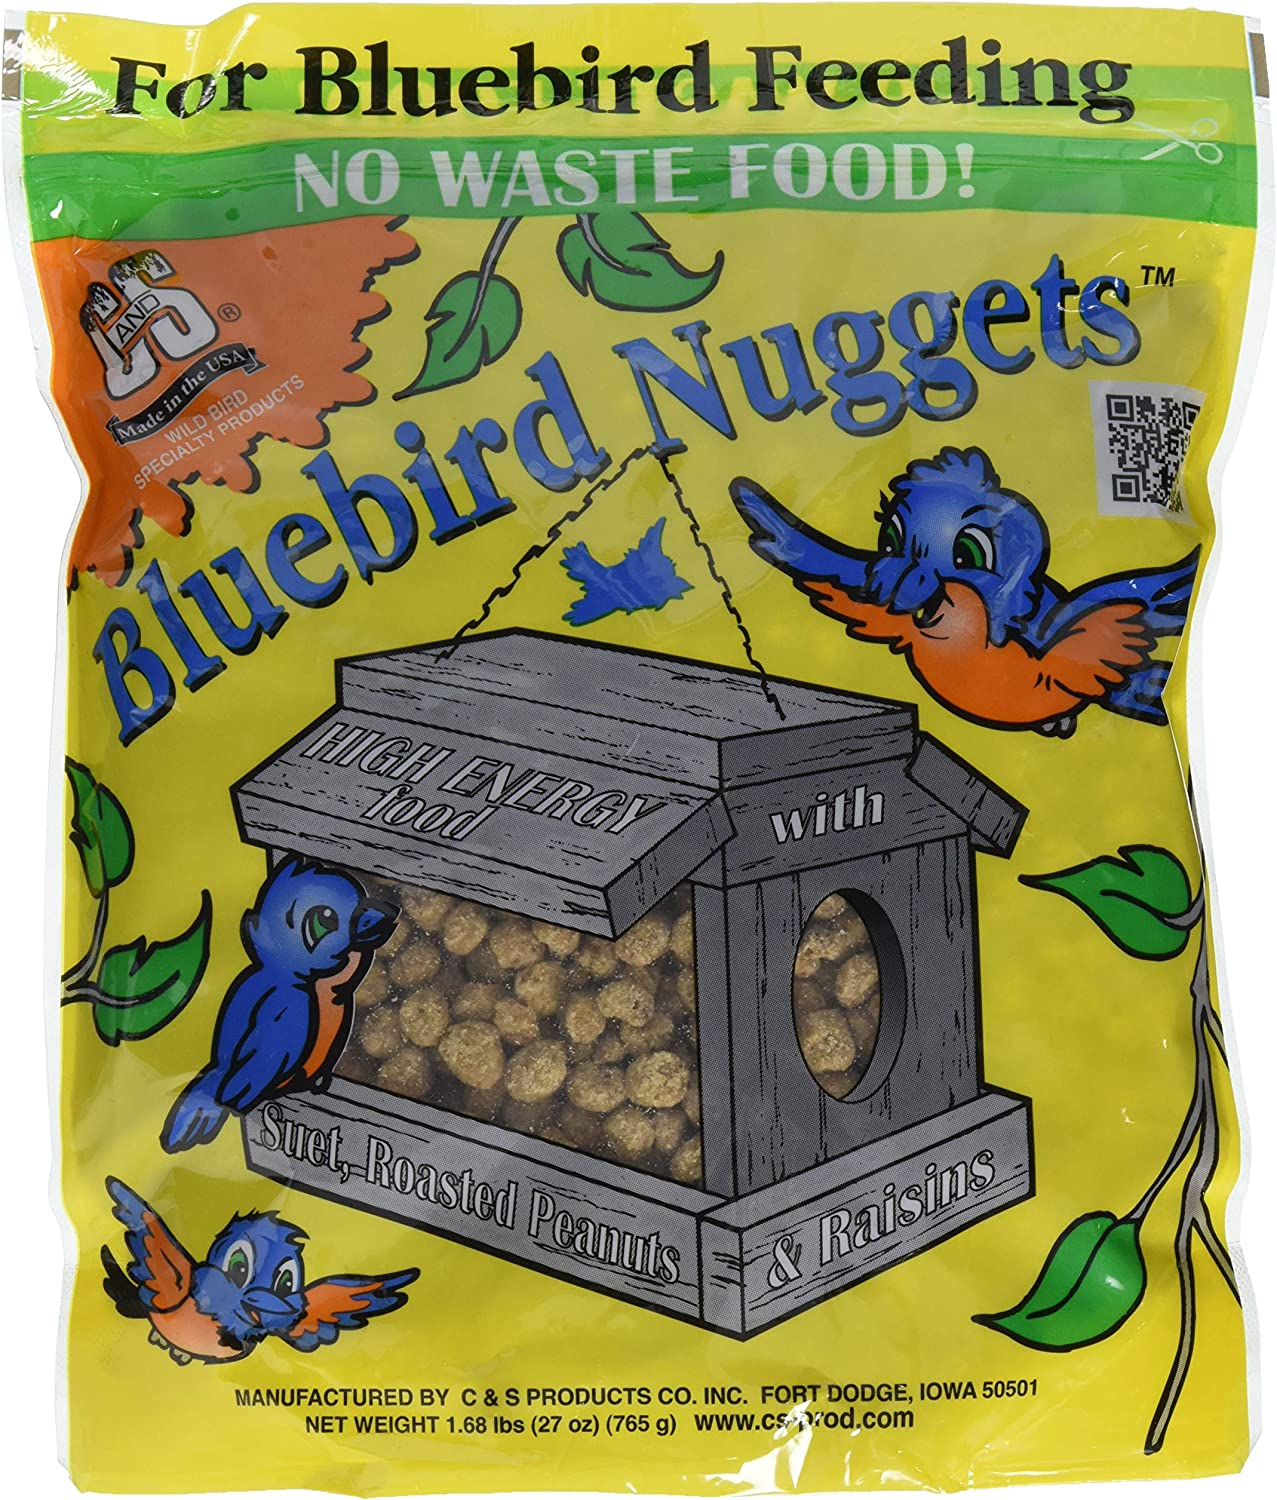 C&S Products Company 791043470539 C & S Products Blue Bird Nuggets Plus Beef Suet,Corn,Peanuts,Raisins 2, 2 Pack, Brown/A